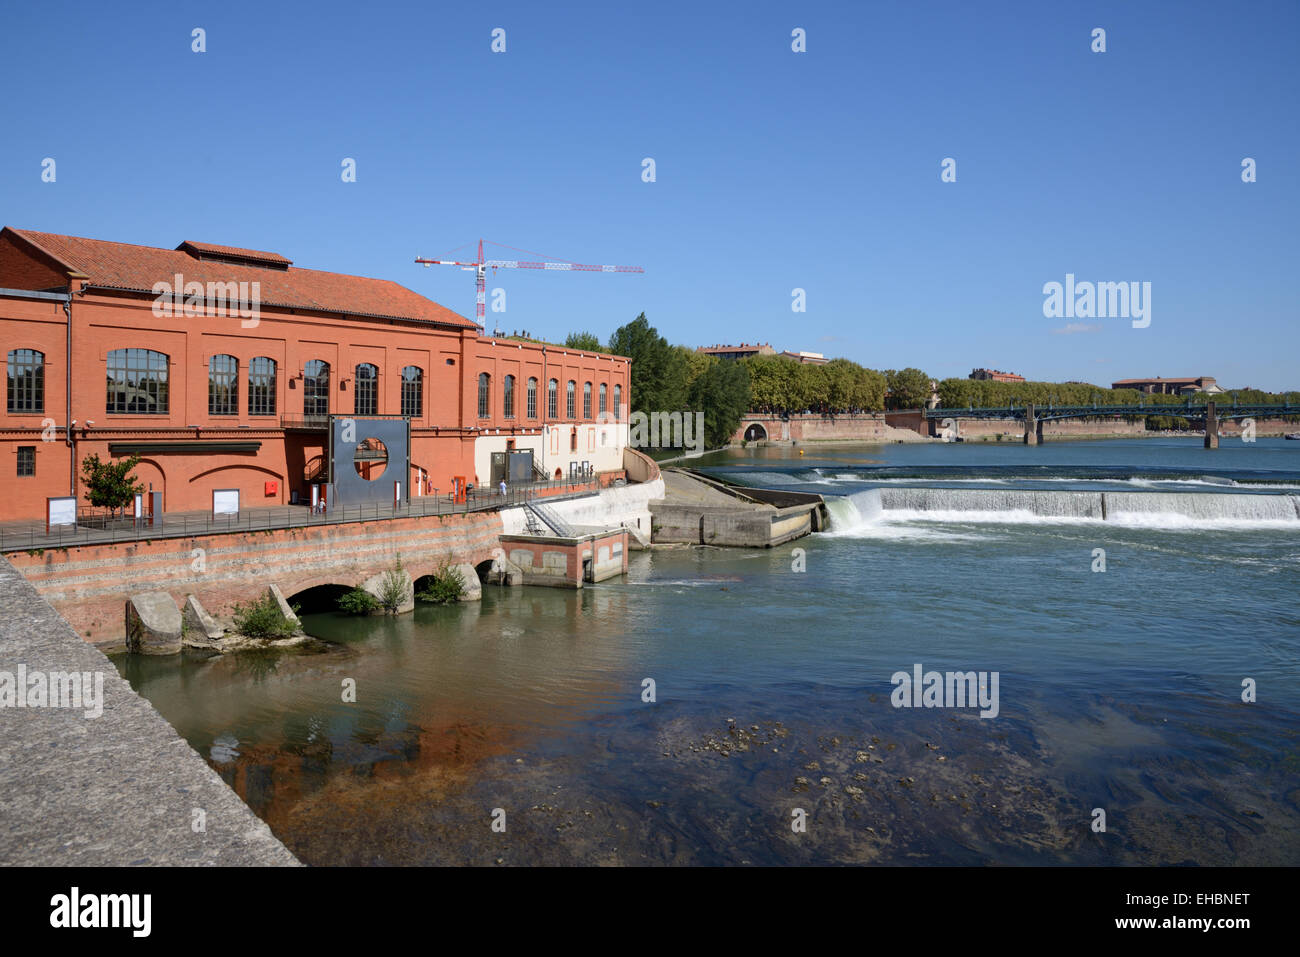 Bazacle Hydro-Electric Barrage or Dam Hydroelectricity or Electricity Power Station and Weir on Garonne River Toulouse - Stock Image